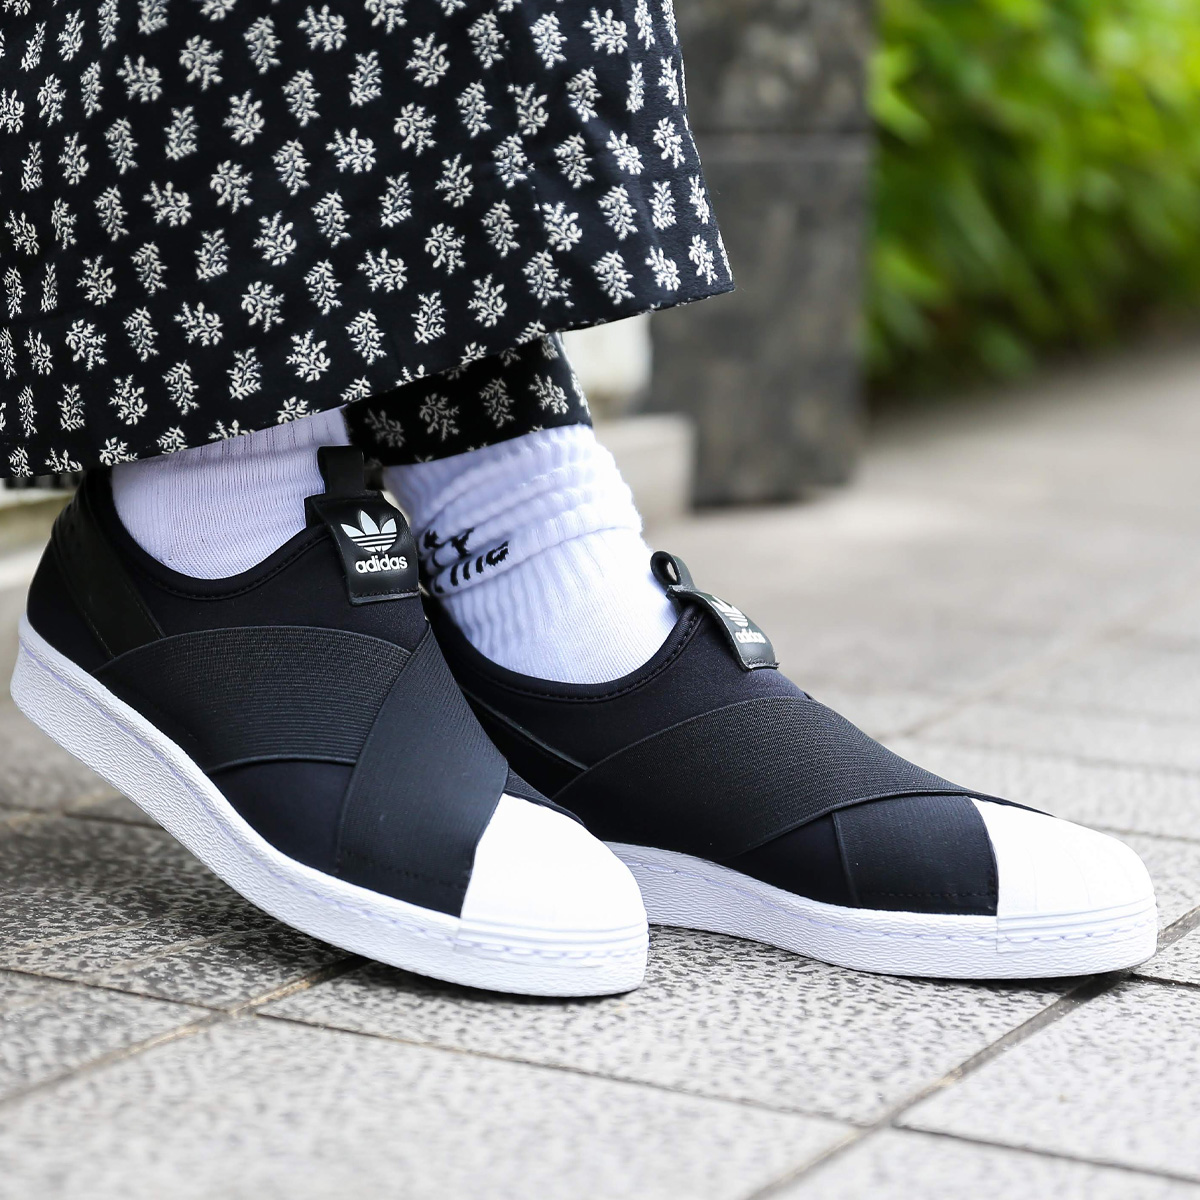 adidas Originals SUPER STAR SLIP ON W (Adidas originals superstar slip-on)  CORE BLACK/CORE BLACK/RUNNING WHITE 19FW-I